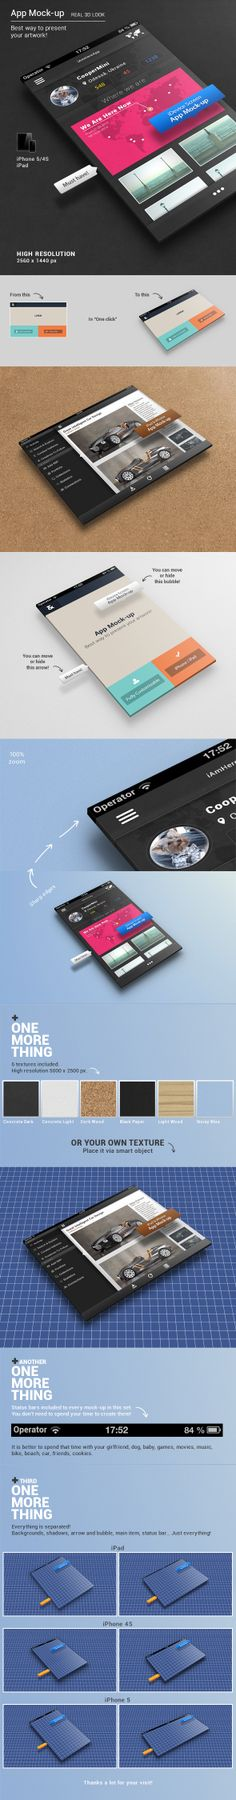 Buy App Mock-up by Synthetique on GraphicRiver. App Mock-ups If you want to present your design layout in a beautiful and aesthetic form, this mock-up will be very h. Mobile App Templates, Mobile Mockup, Business Flyer Templates, Mockup Templates, App Design, Layout Design, Flat Design, Ui Portfolio, Display Mockup